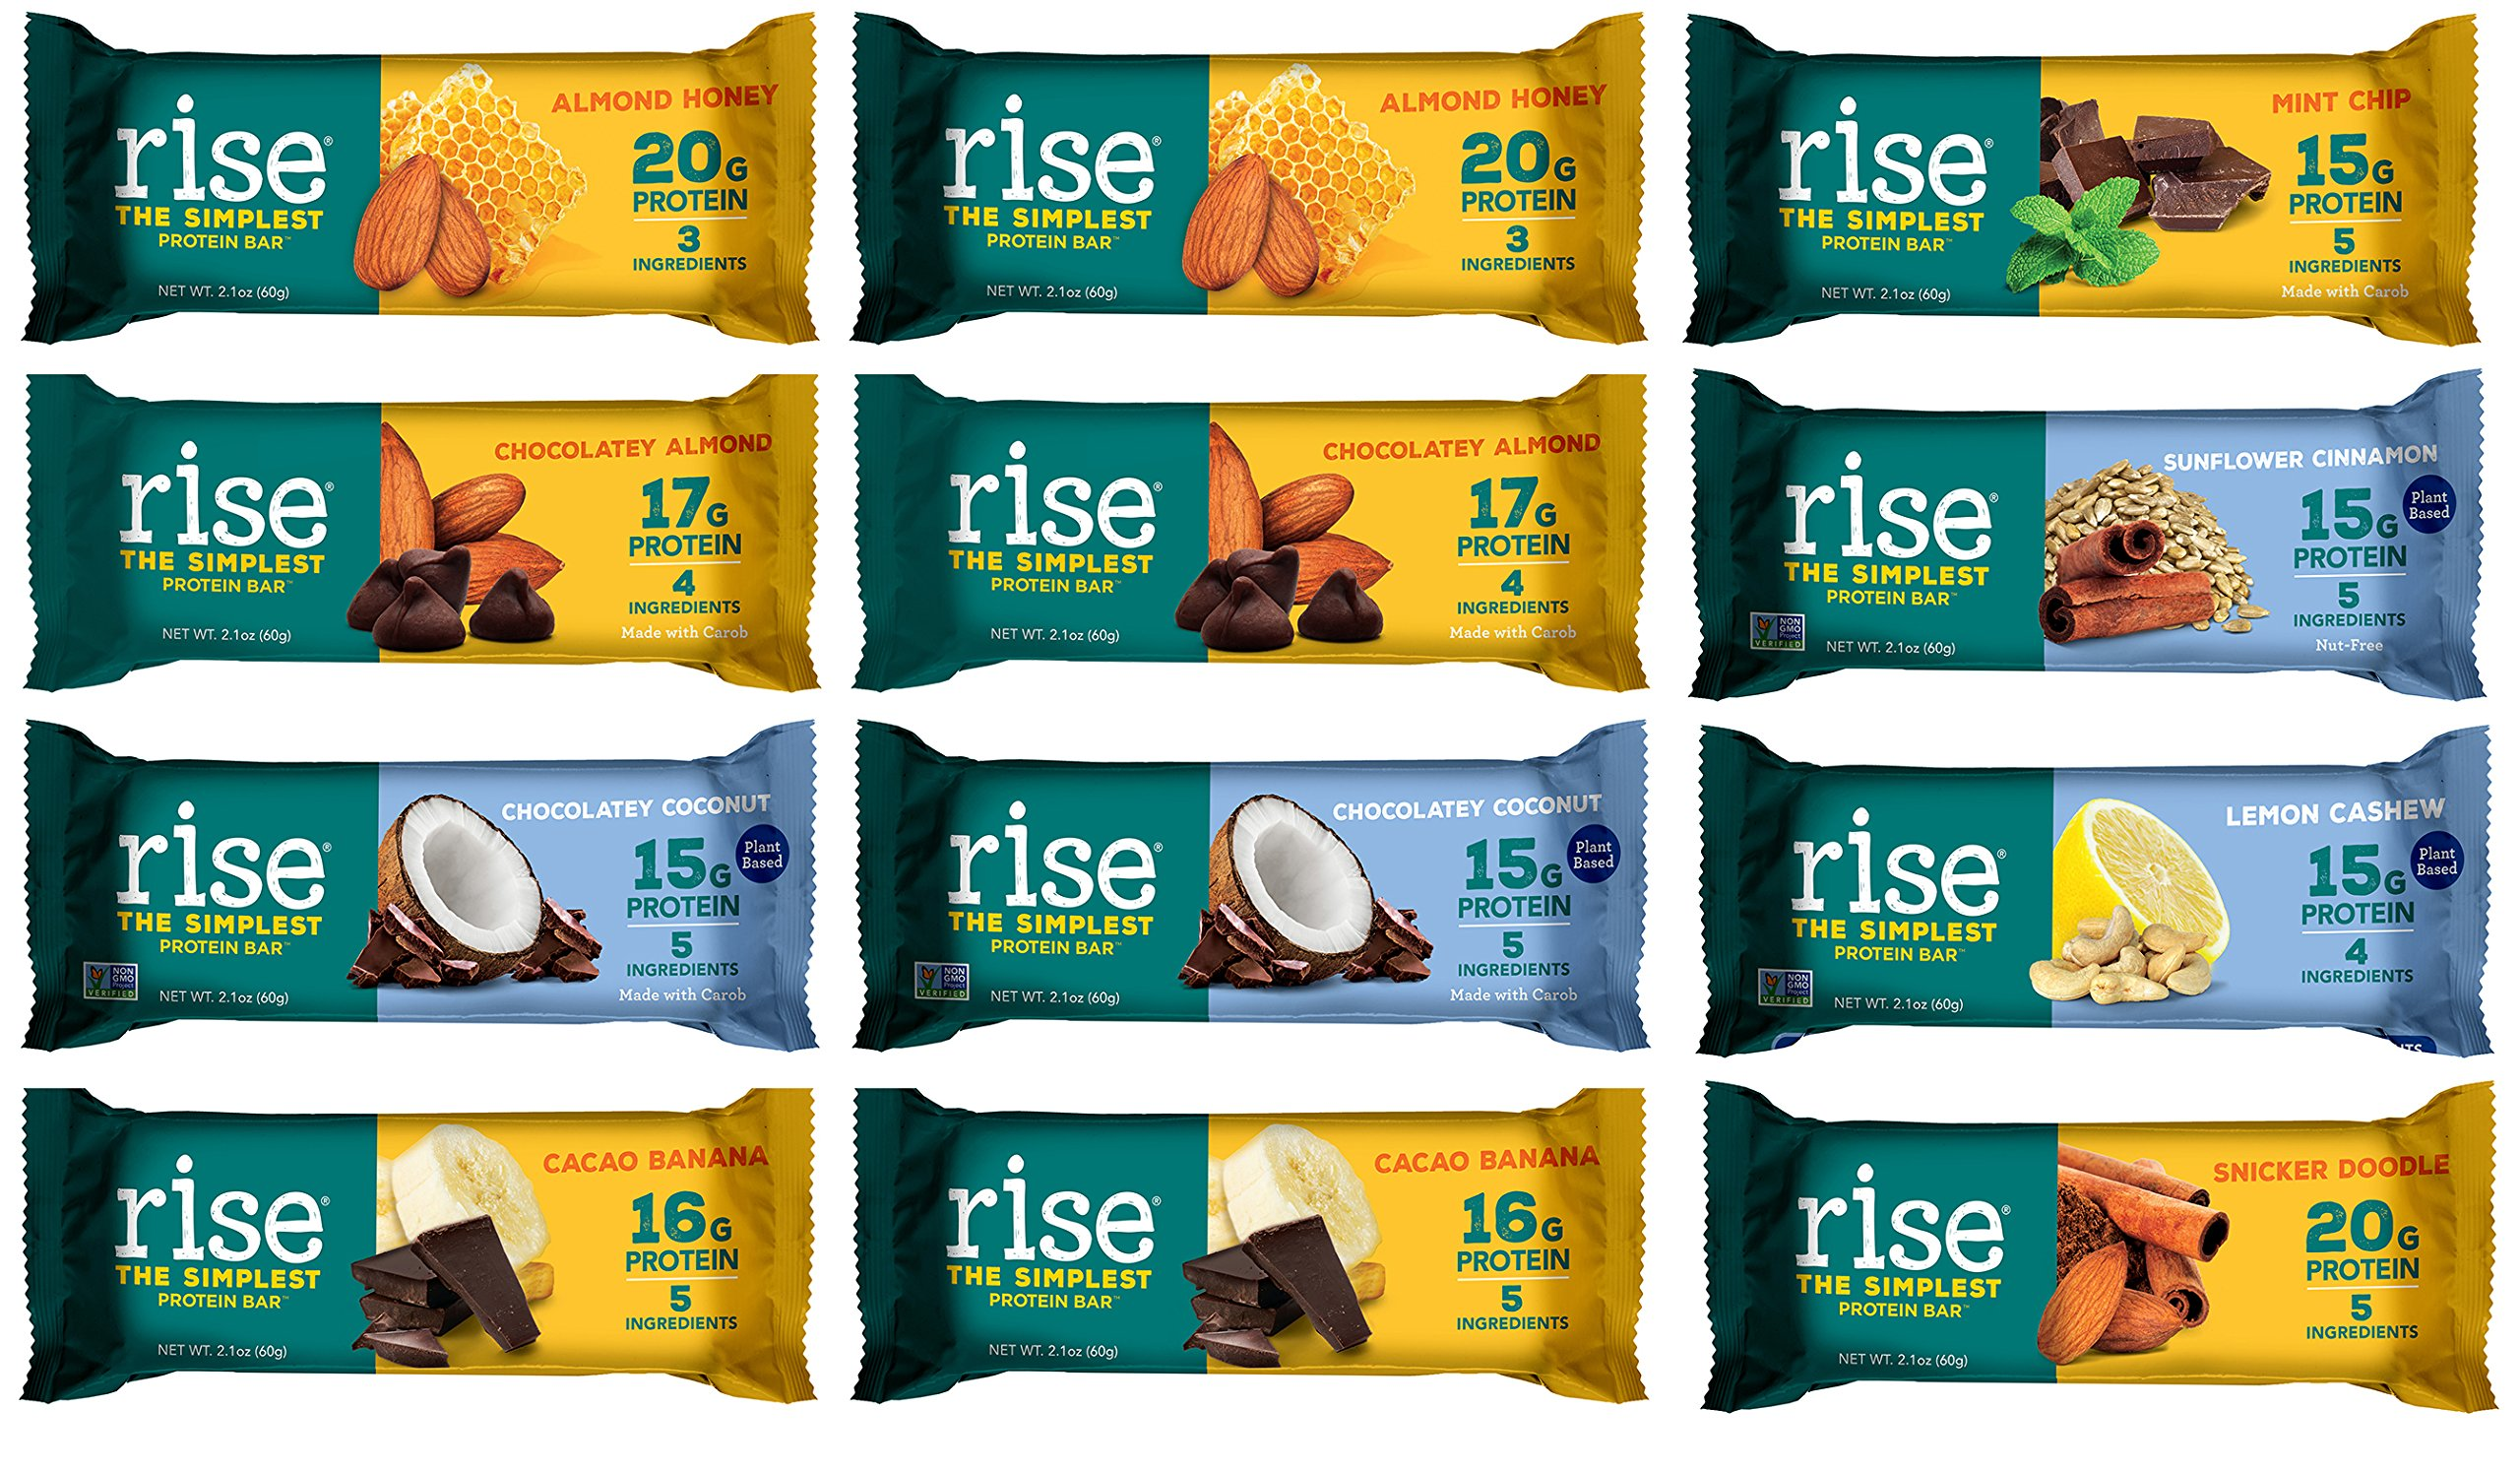 Rise Bar All 8 Flavors Variety Pack w/ 2 Almond Honey 2 Chocolatey Almond 2 Cacao Banana 2 Chocolatey Coconut 1 Mint Chip 1 Sunflower Cinnamon 1 Lemon Cashew 1 Snickerdoodle, 2.1 oz, Pack of 12